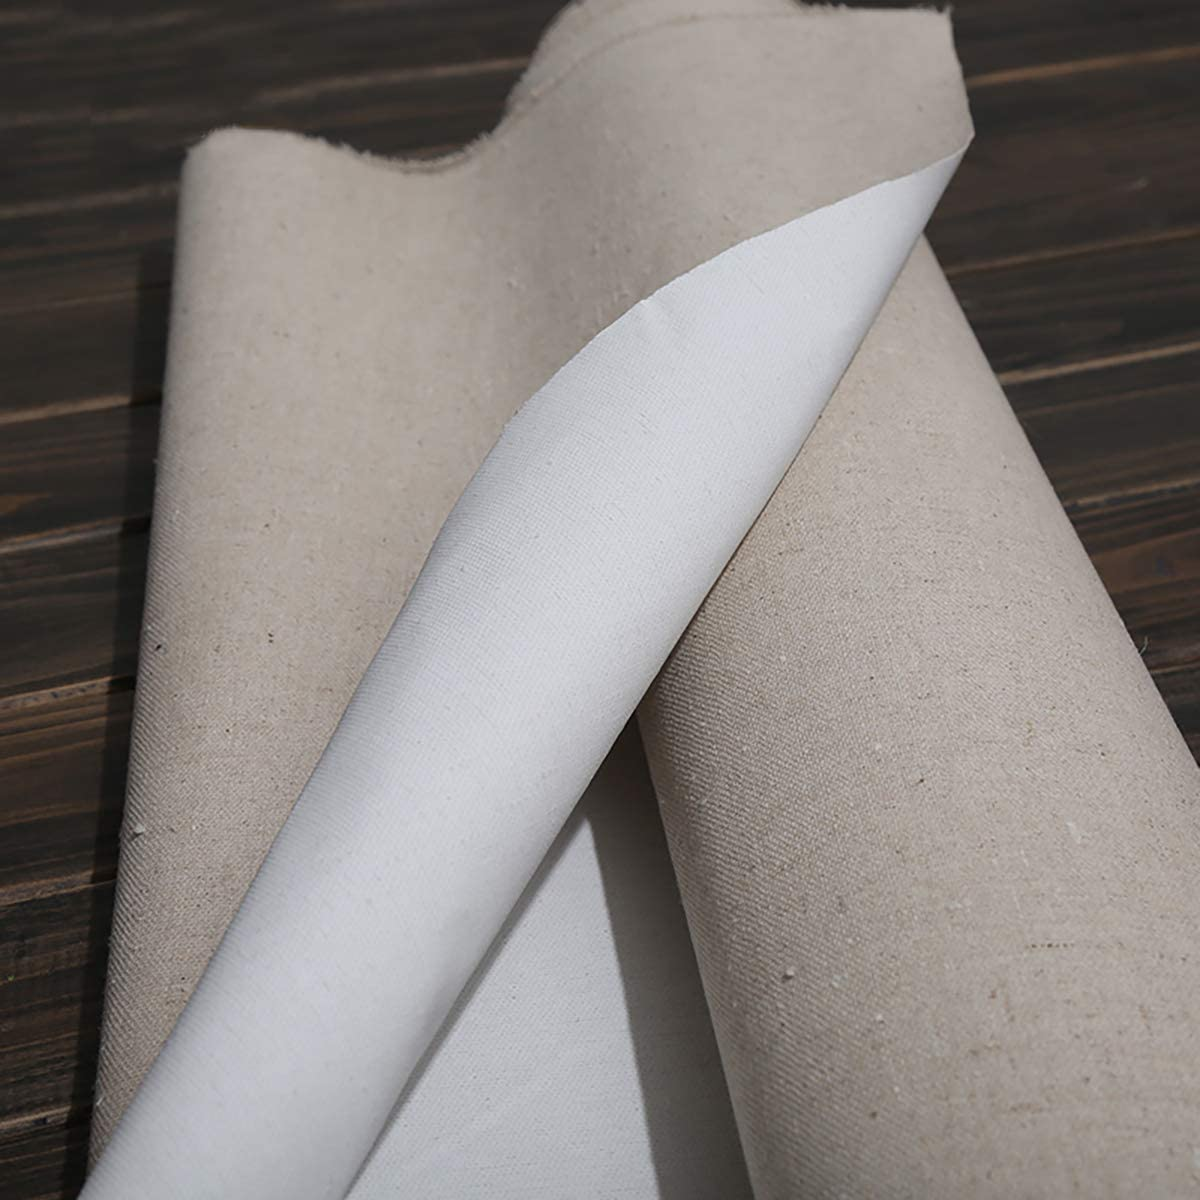 Linen Blend Primed Blank Canvas For Painting High Quality Layer Oil Painting Canvas Queenbox 39.3 inch Linen Canvas Roll Width 15 inch